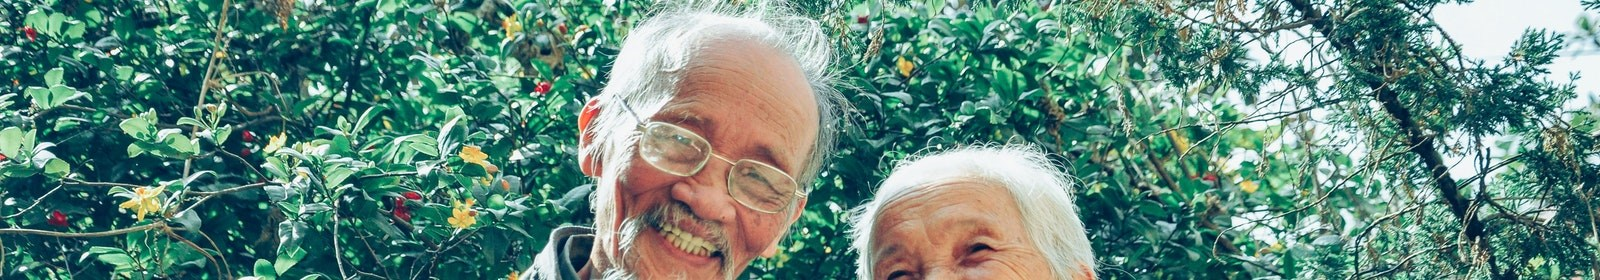 Relocating Elderly Parents As They Become More Dependent